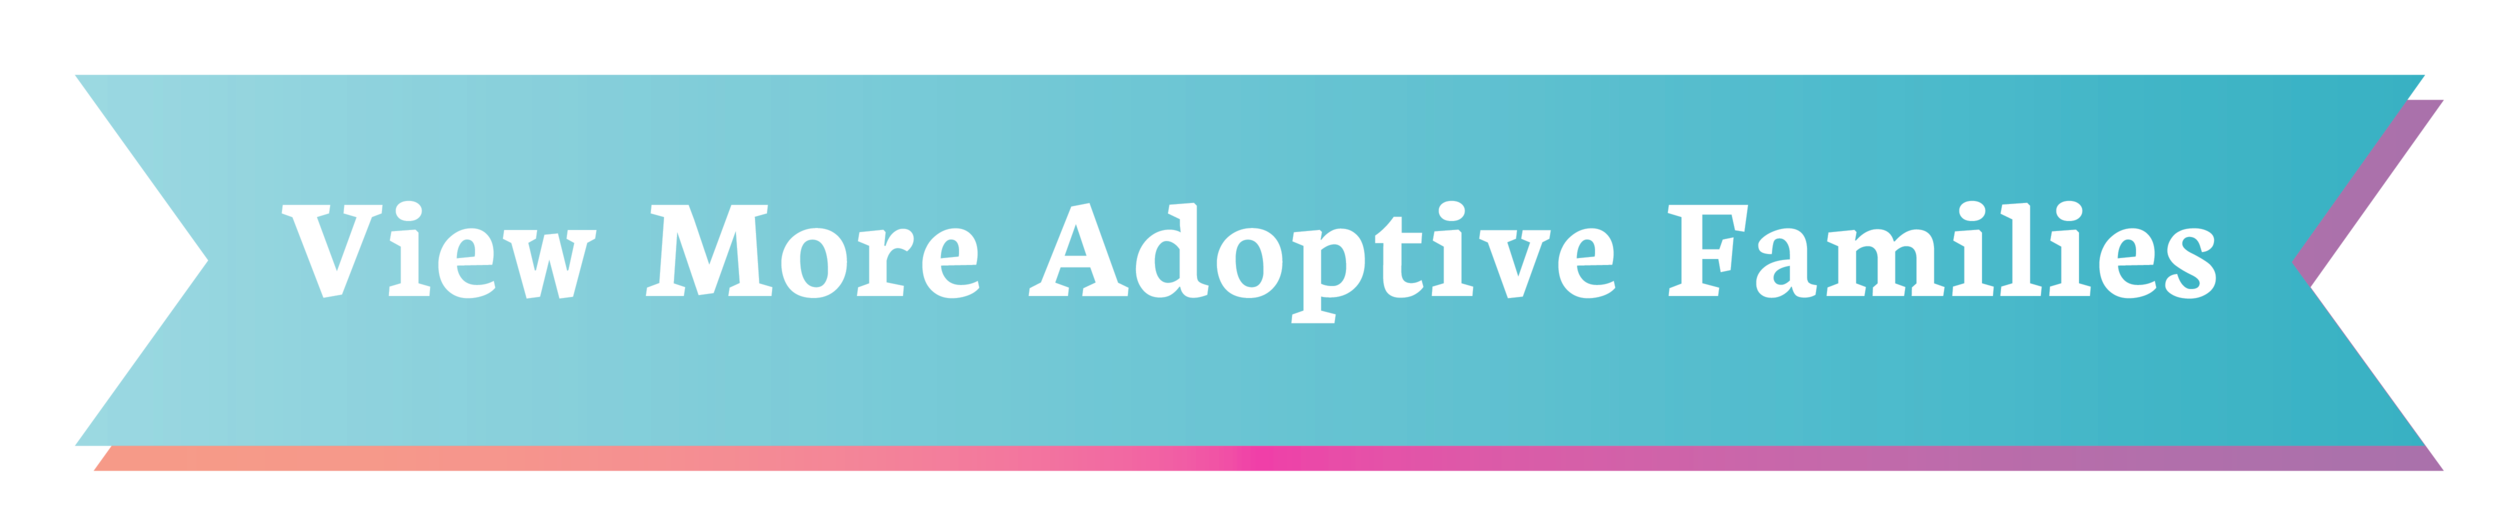 Jeff Katie Adopt Adoptive Parents Adoption Newborn Baby Unplanned pregnancy pregnant help